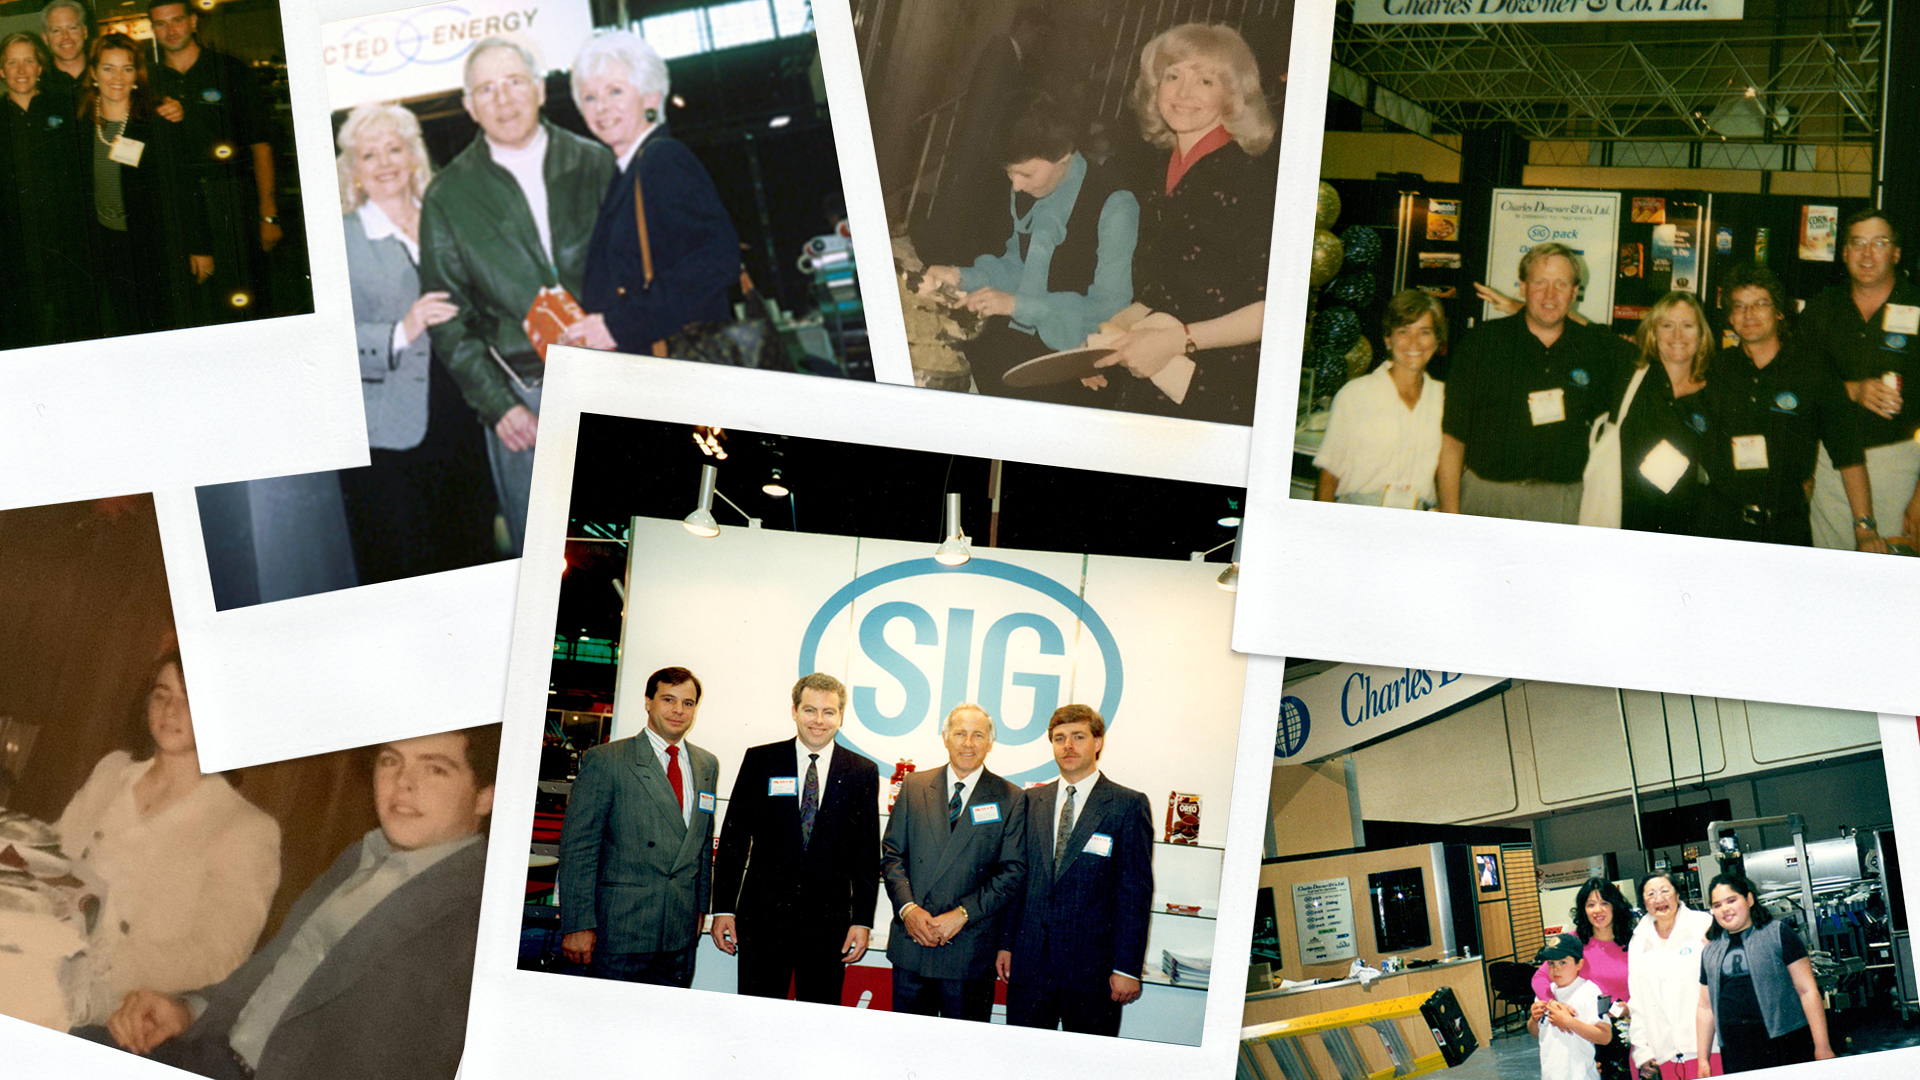 Our History - Founded in 1977 by Charles Downer Sr., Charles Downer & Co. Ltd. has been an industry leader for over 40 years. We help businesses big and small to build specialized packaging equipment and robotics solutions for their specific production needs. As a family-owned business, we value relationships above all. That's why we continue to take a hands-on approach to each project to ensure that our customers are always satisfied.